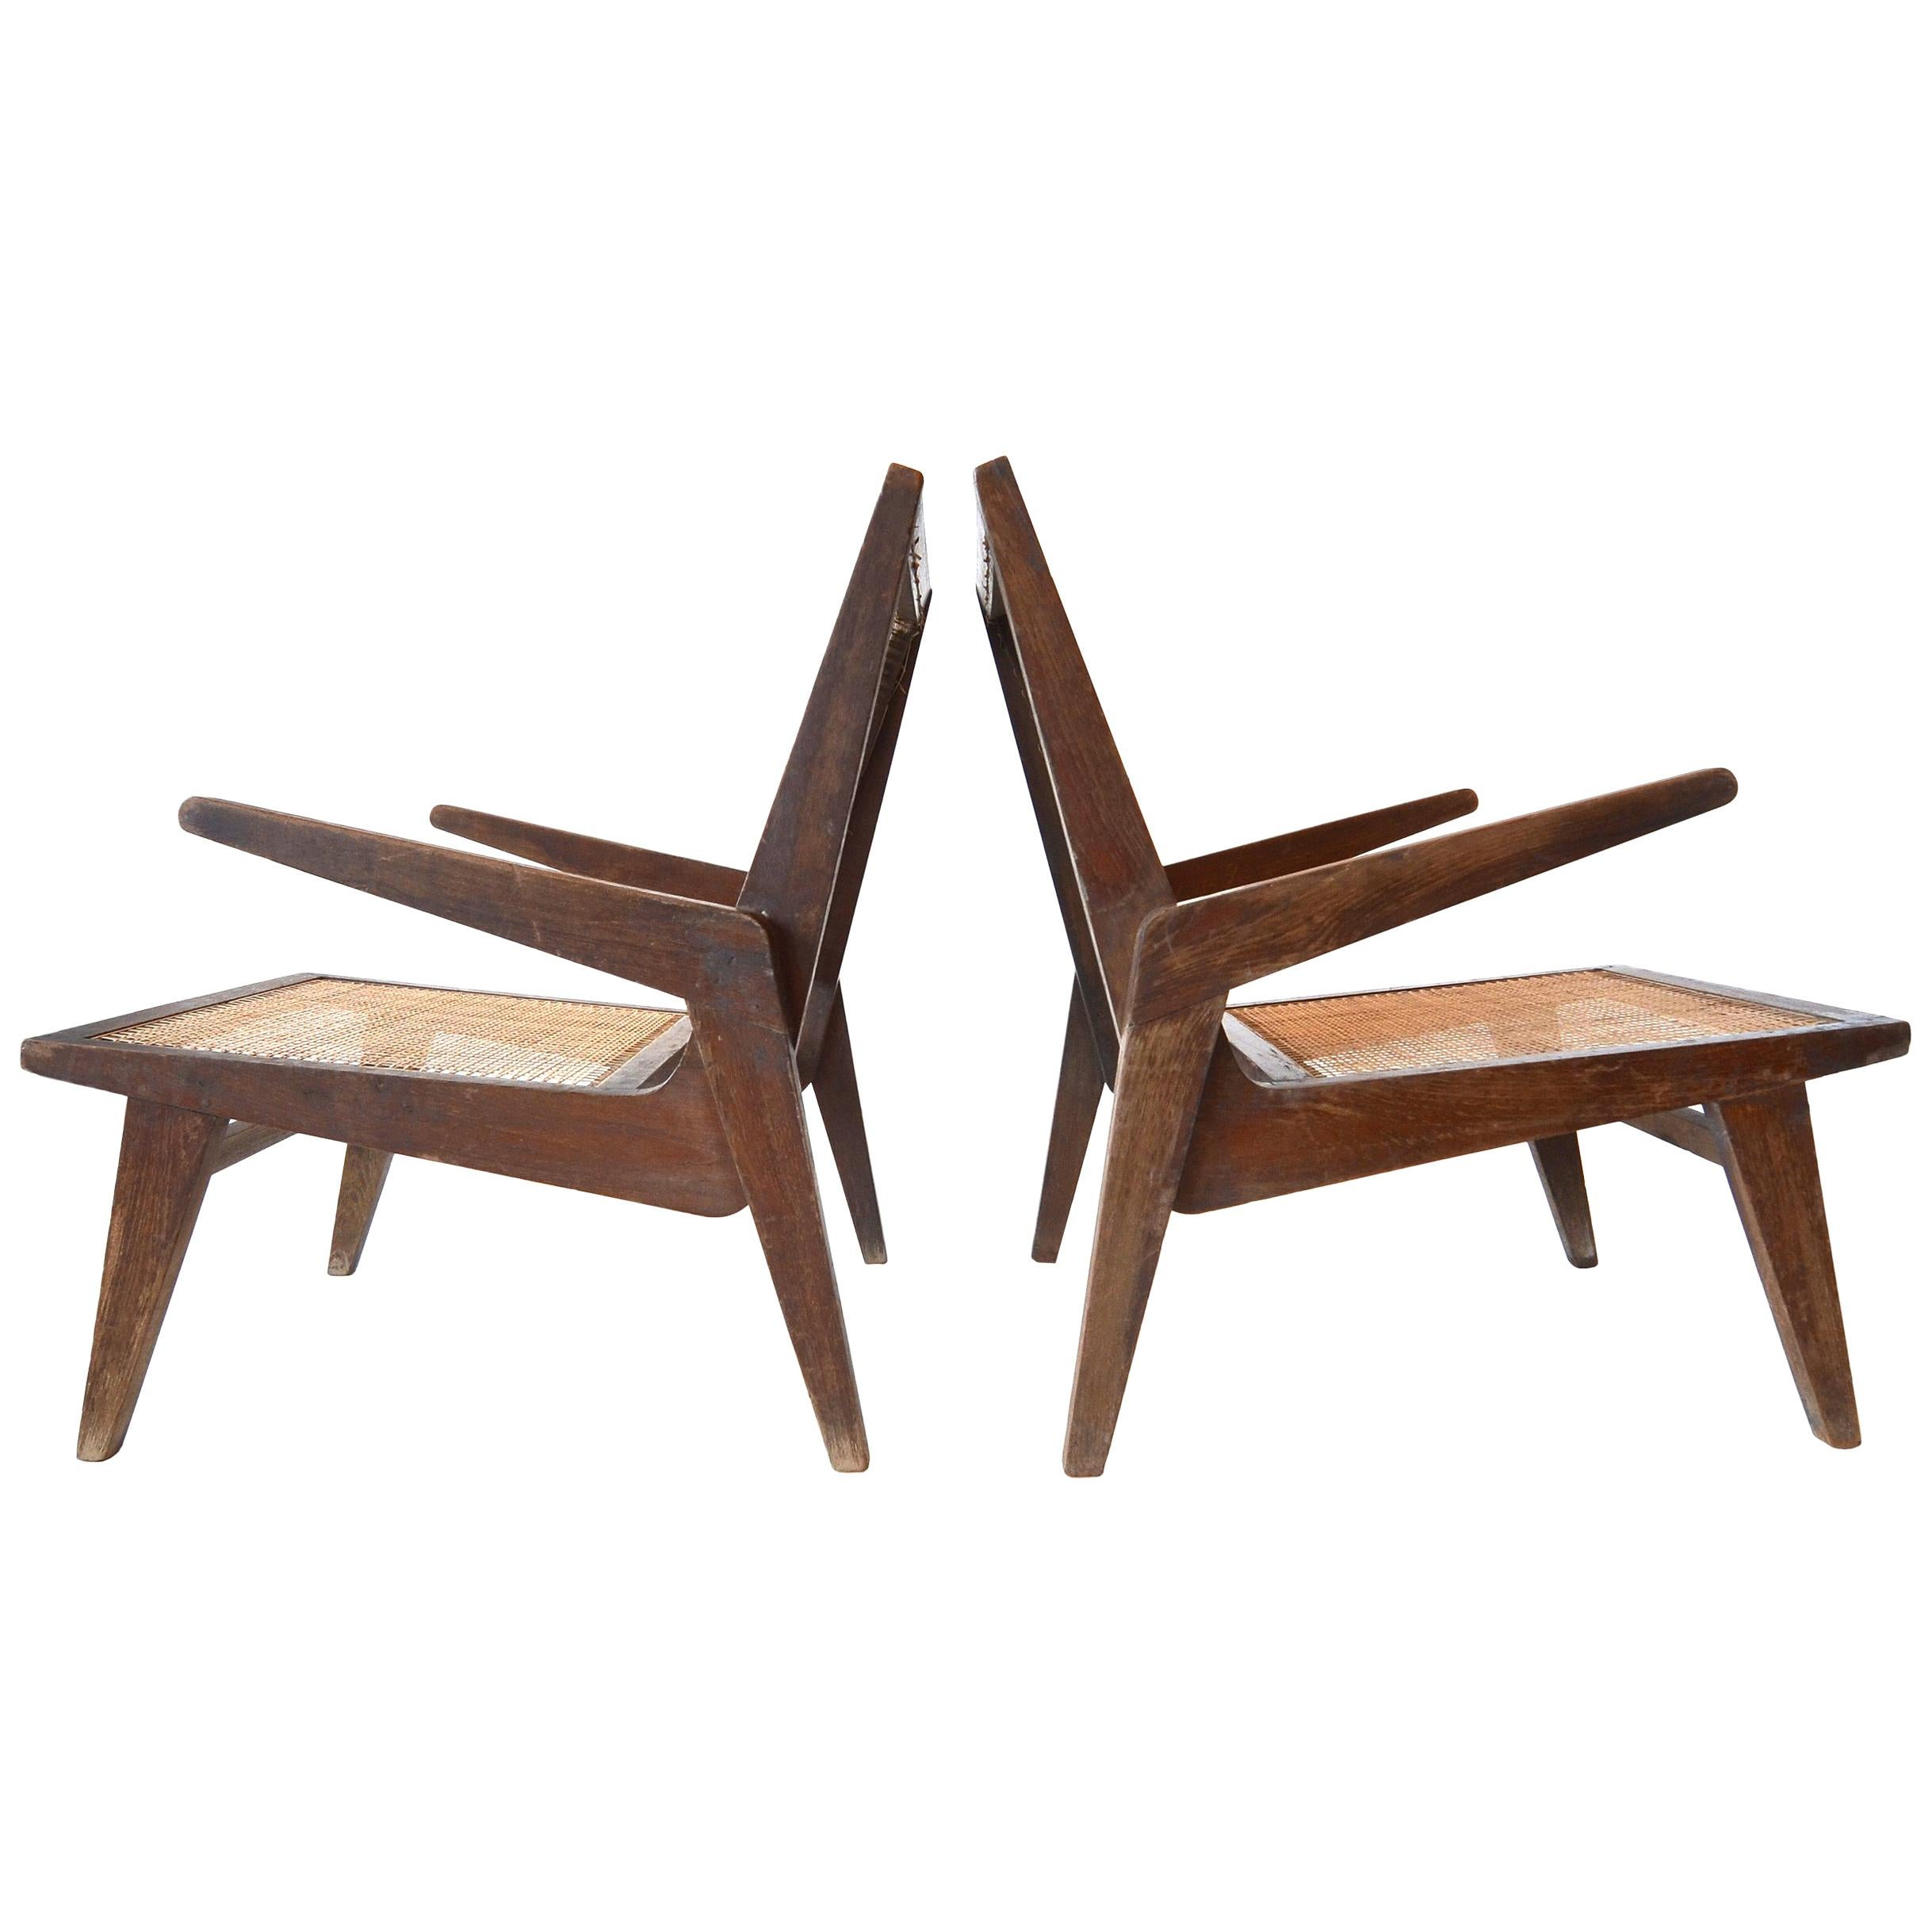 Pierre Jeanneret Stadium Lounge Chairs